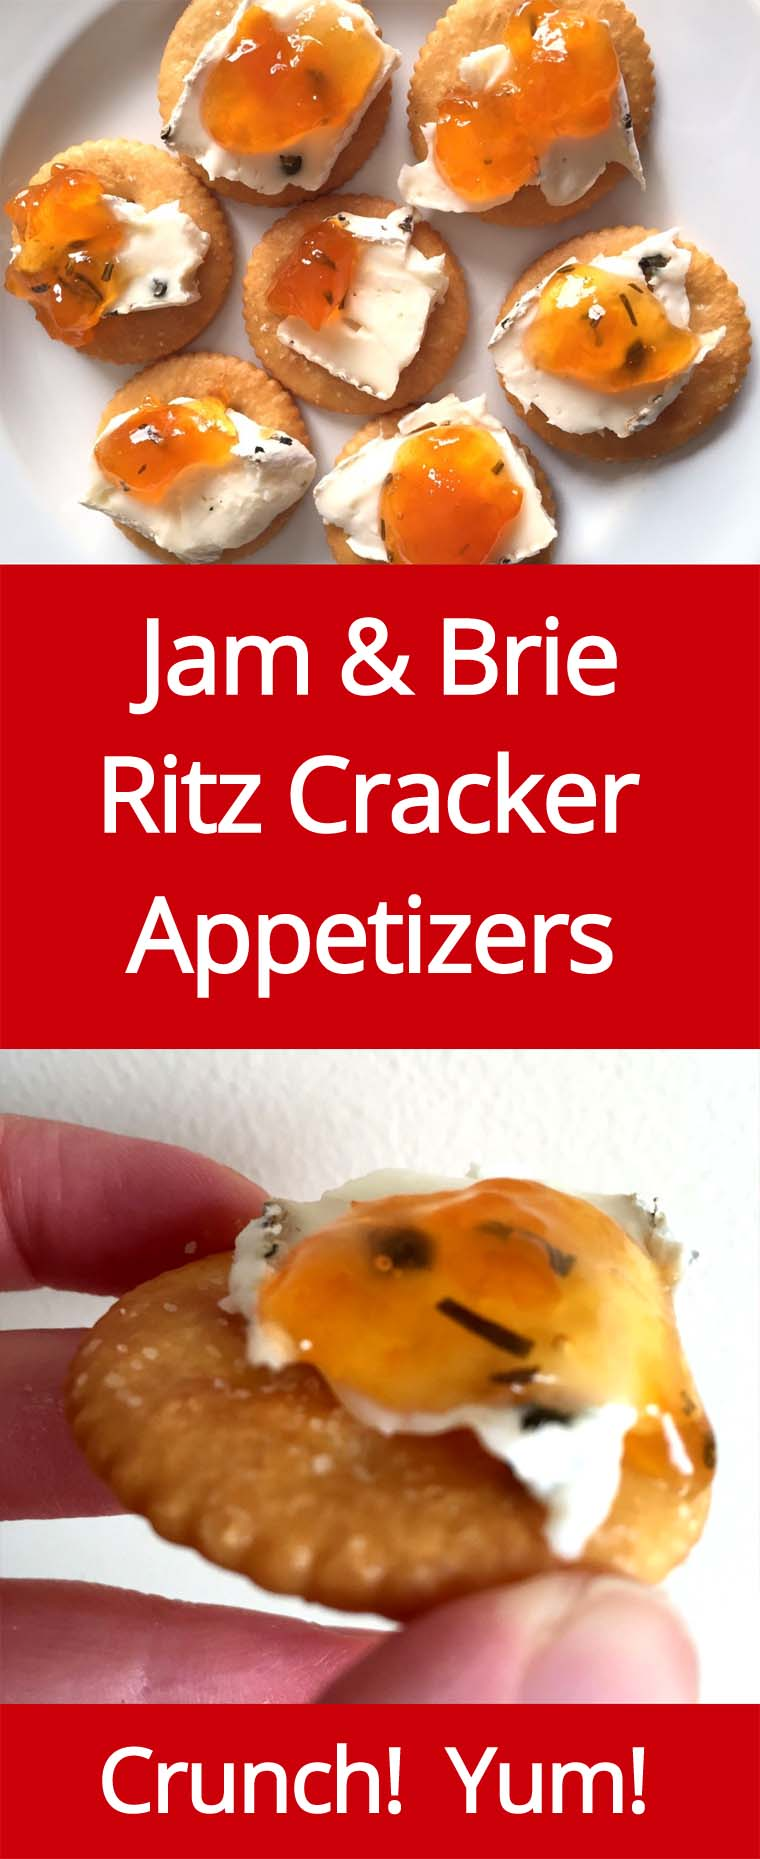 Jam & Brie Cheese On Ritz Crackers - Amazing Appetizer | MelanieCooks.com